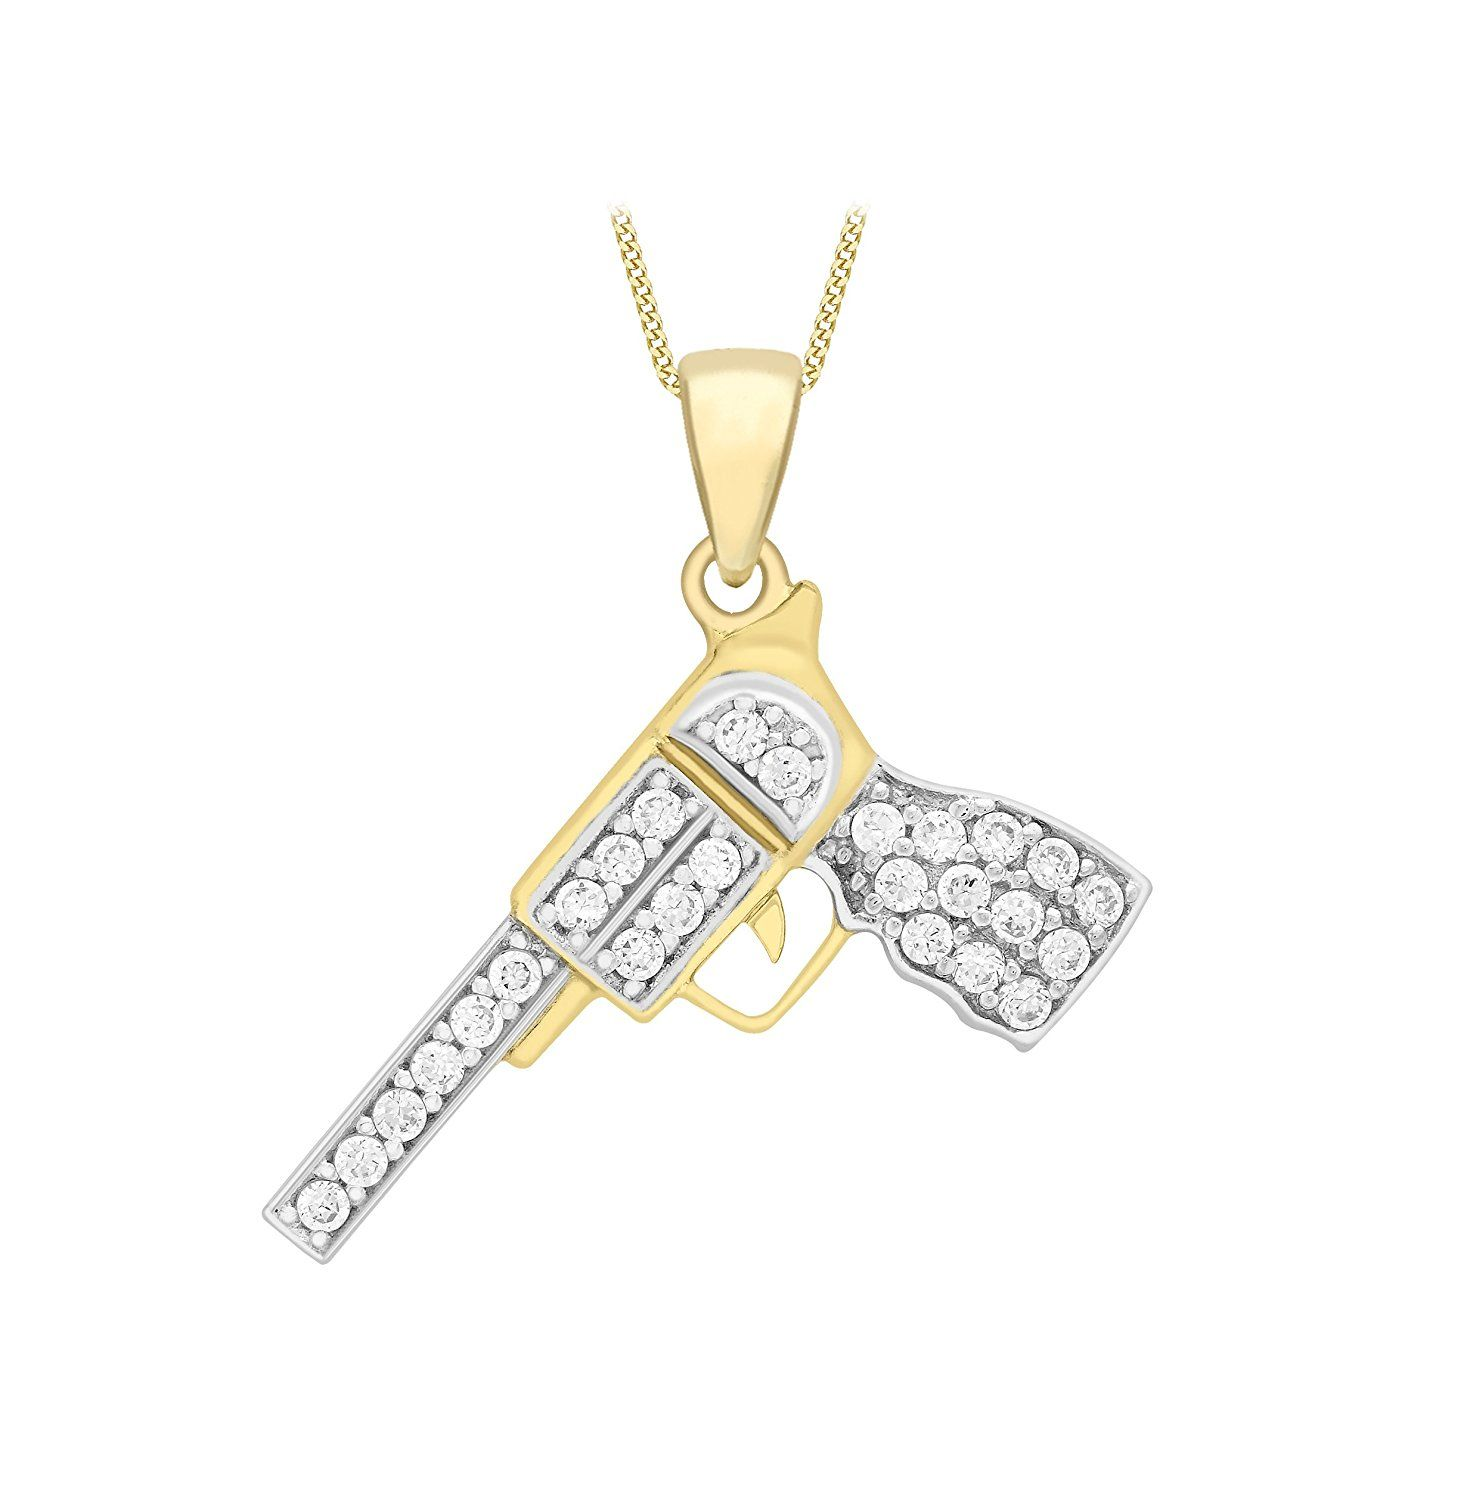 Carissima Gold 9 ct Yellow Gold Cubic Zirconia Cross Pendant on Curb Chain Necklace of 46 cm/18 inch iv3TK